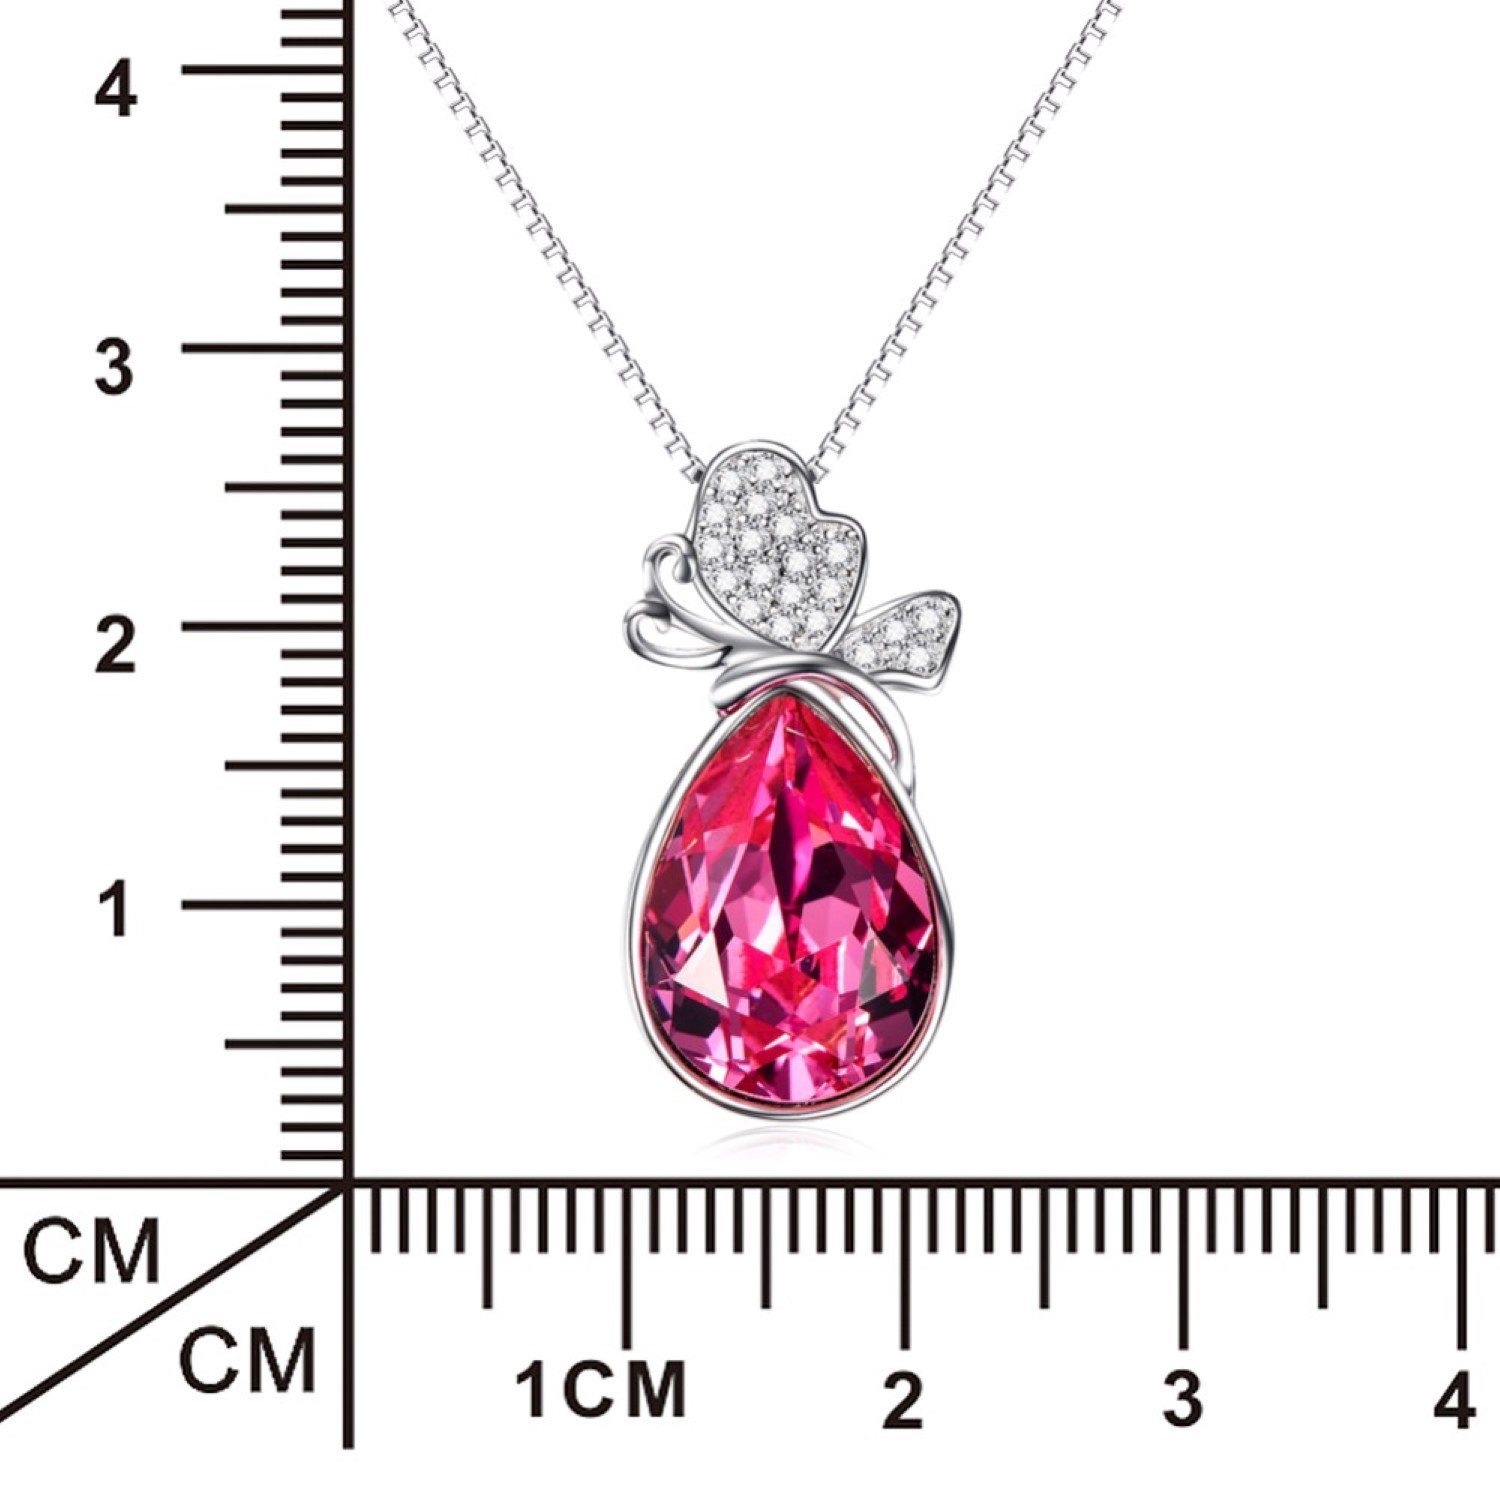 CS-DB Pendants Necklaces Silver Rose Red Crystal Water Drop Jewelry Girls